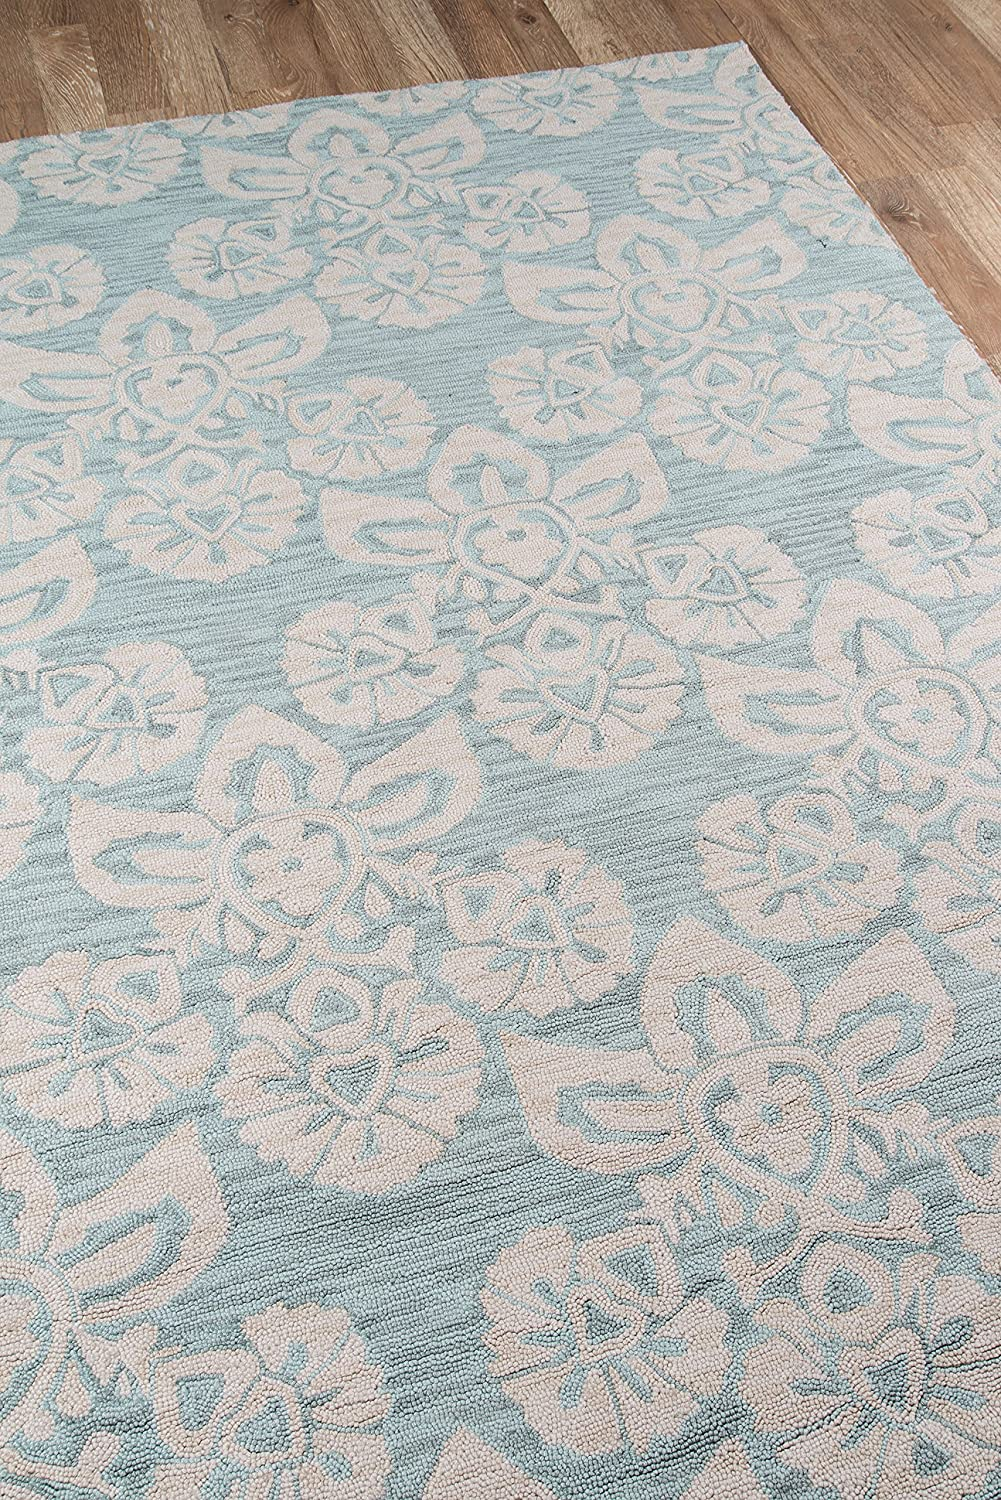 Momeni Rugs  Summit Collection Hand Knotted Transitional Area Rug SUMITSUM18LBL2376 Light Blue 2/'3 x 7/'6 Runner Inc 23 x 76 Runner